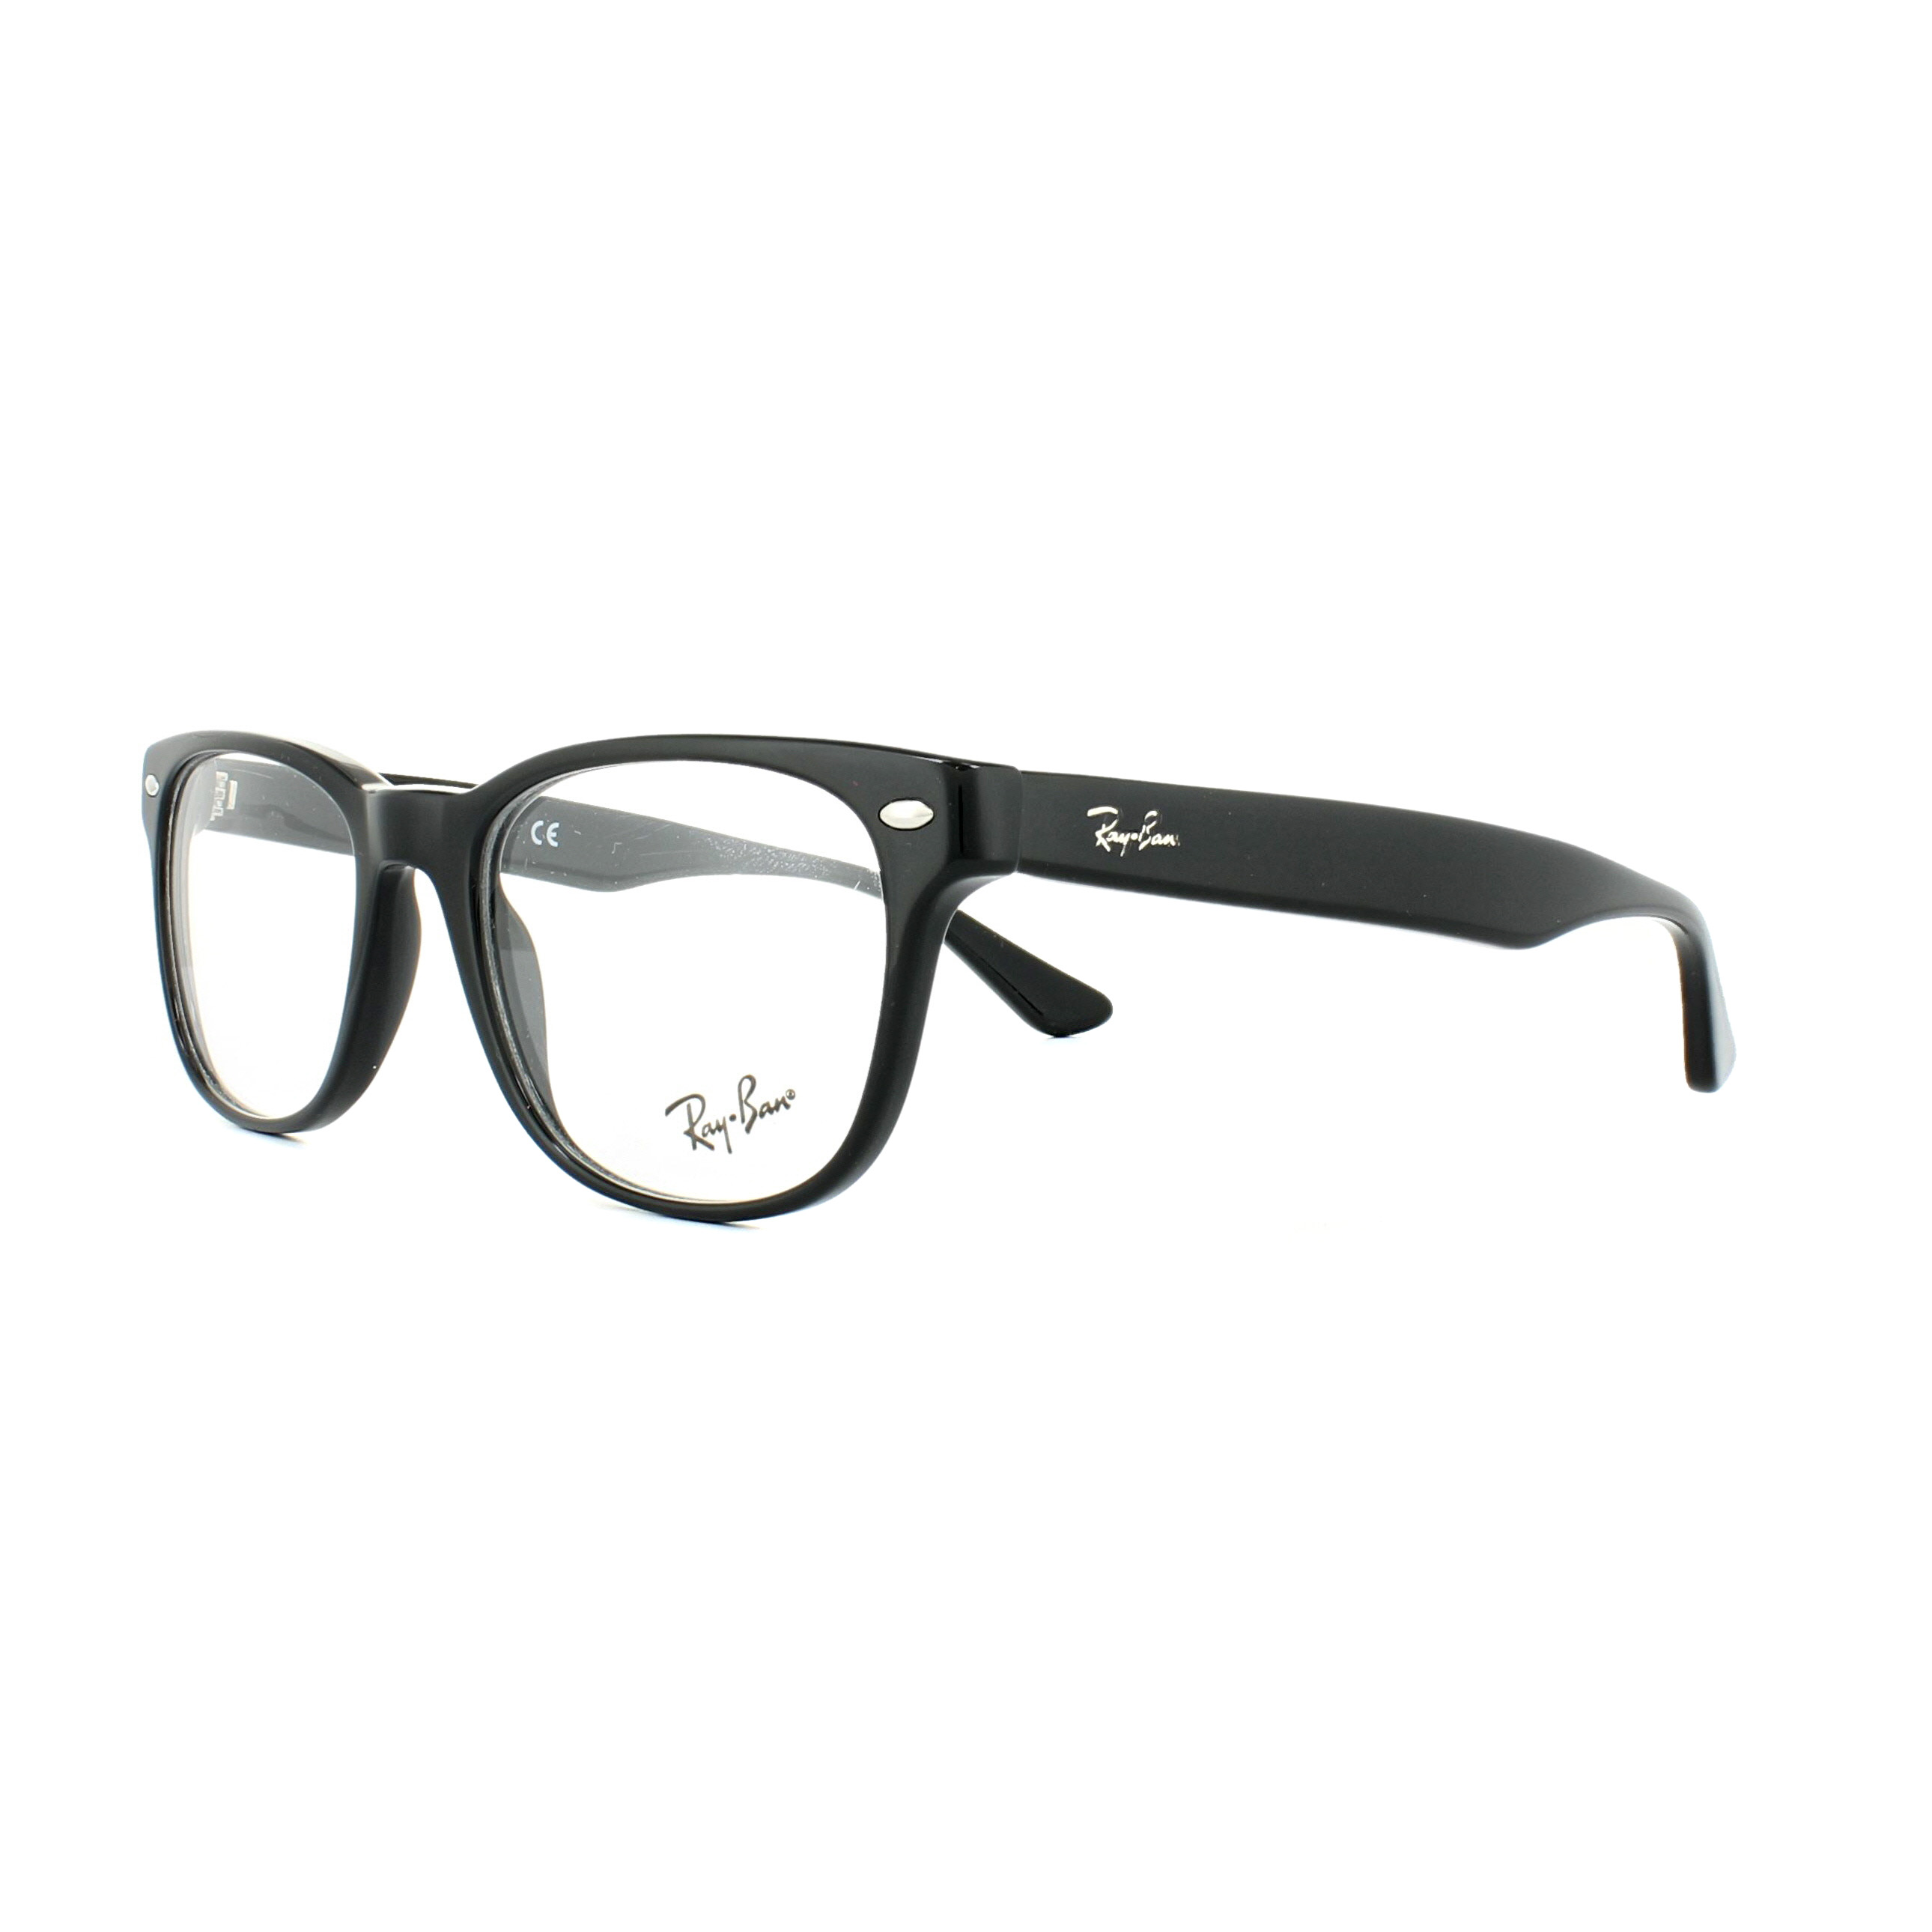 cde7e1d8ec Ray-Ban Glasses Frames 5359 2000 Shiny Black 51mm Mens 8053672768961 ...